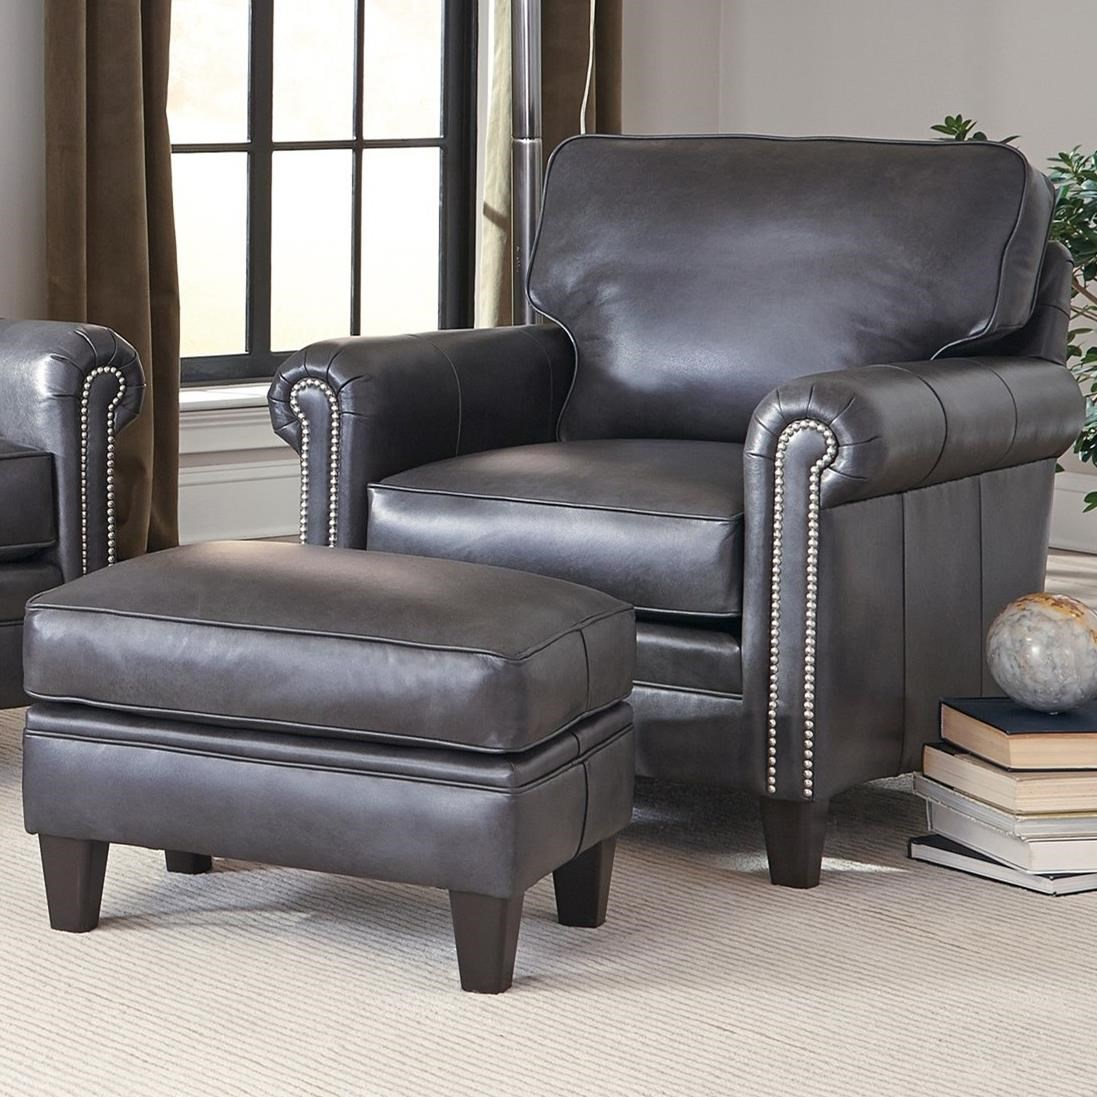 234 Chair and Ottoman Set by Smith Brothers at Story & Lee Furniture